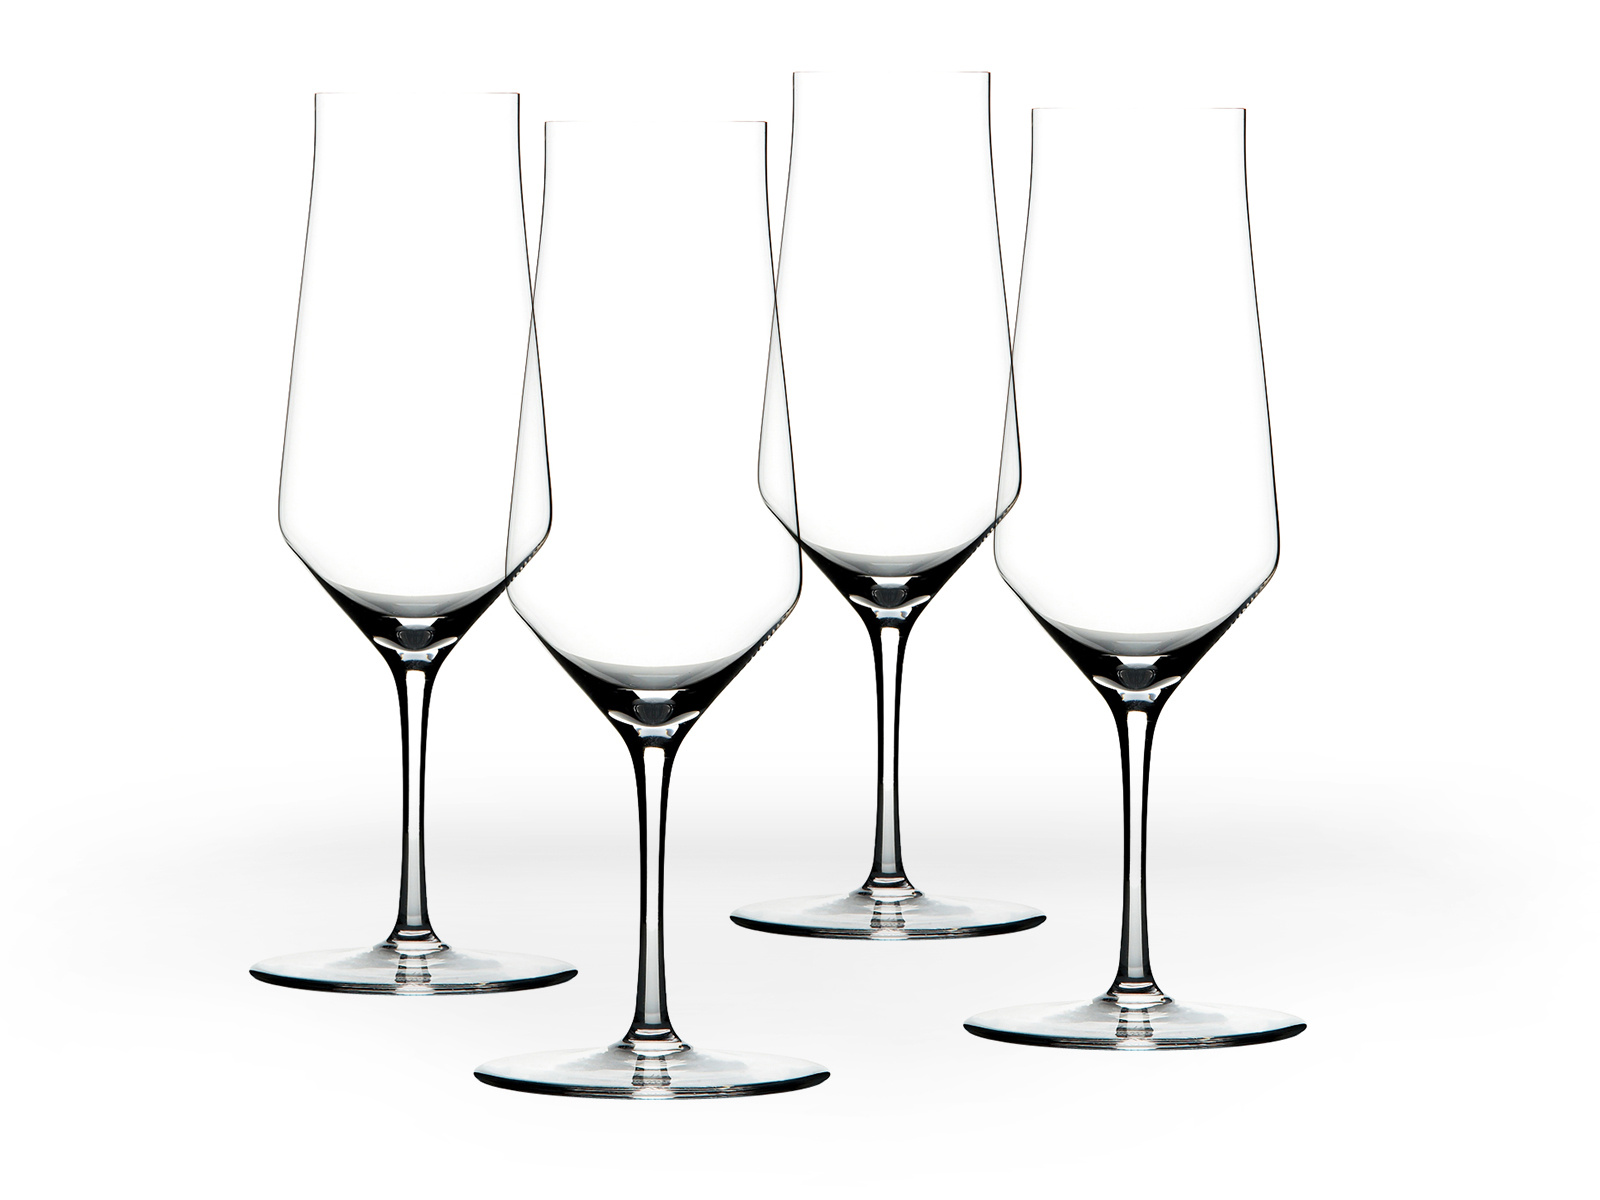 Zalto--Beer-Glass-4-1600x1200_sku_cropped_1600x1200_q95_7b958f